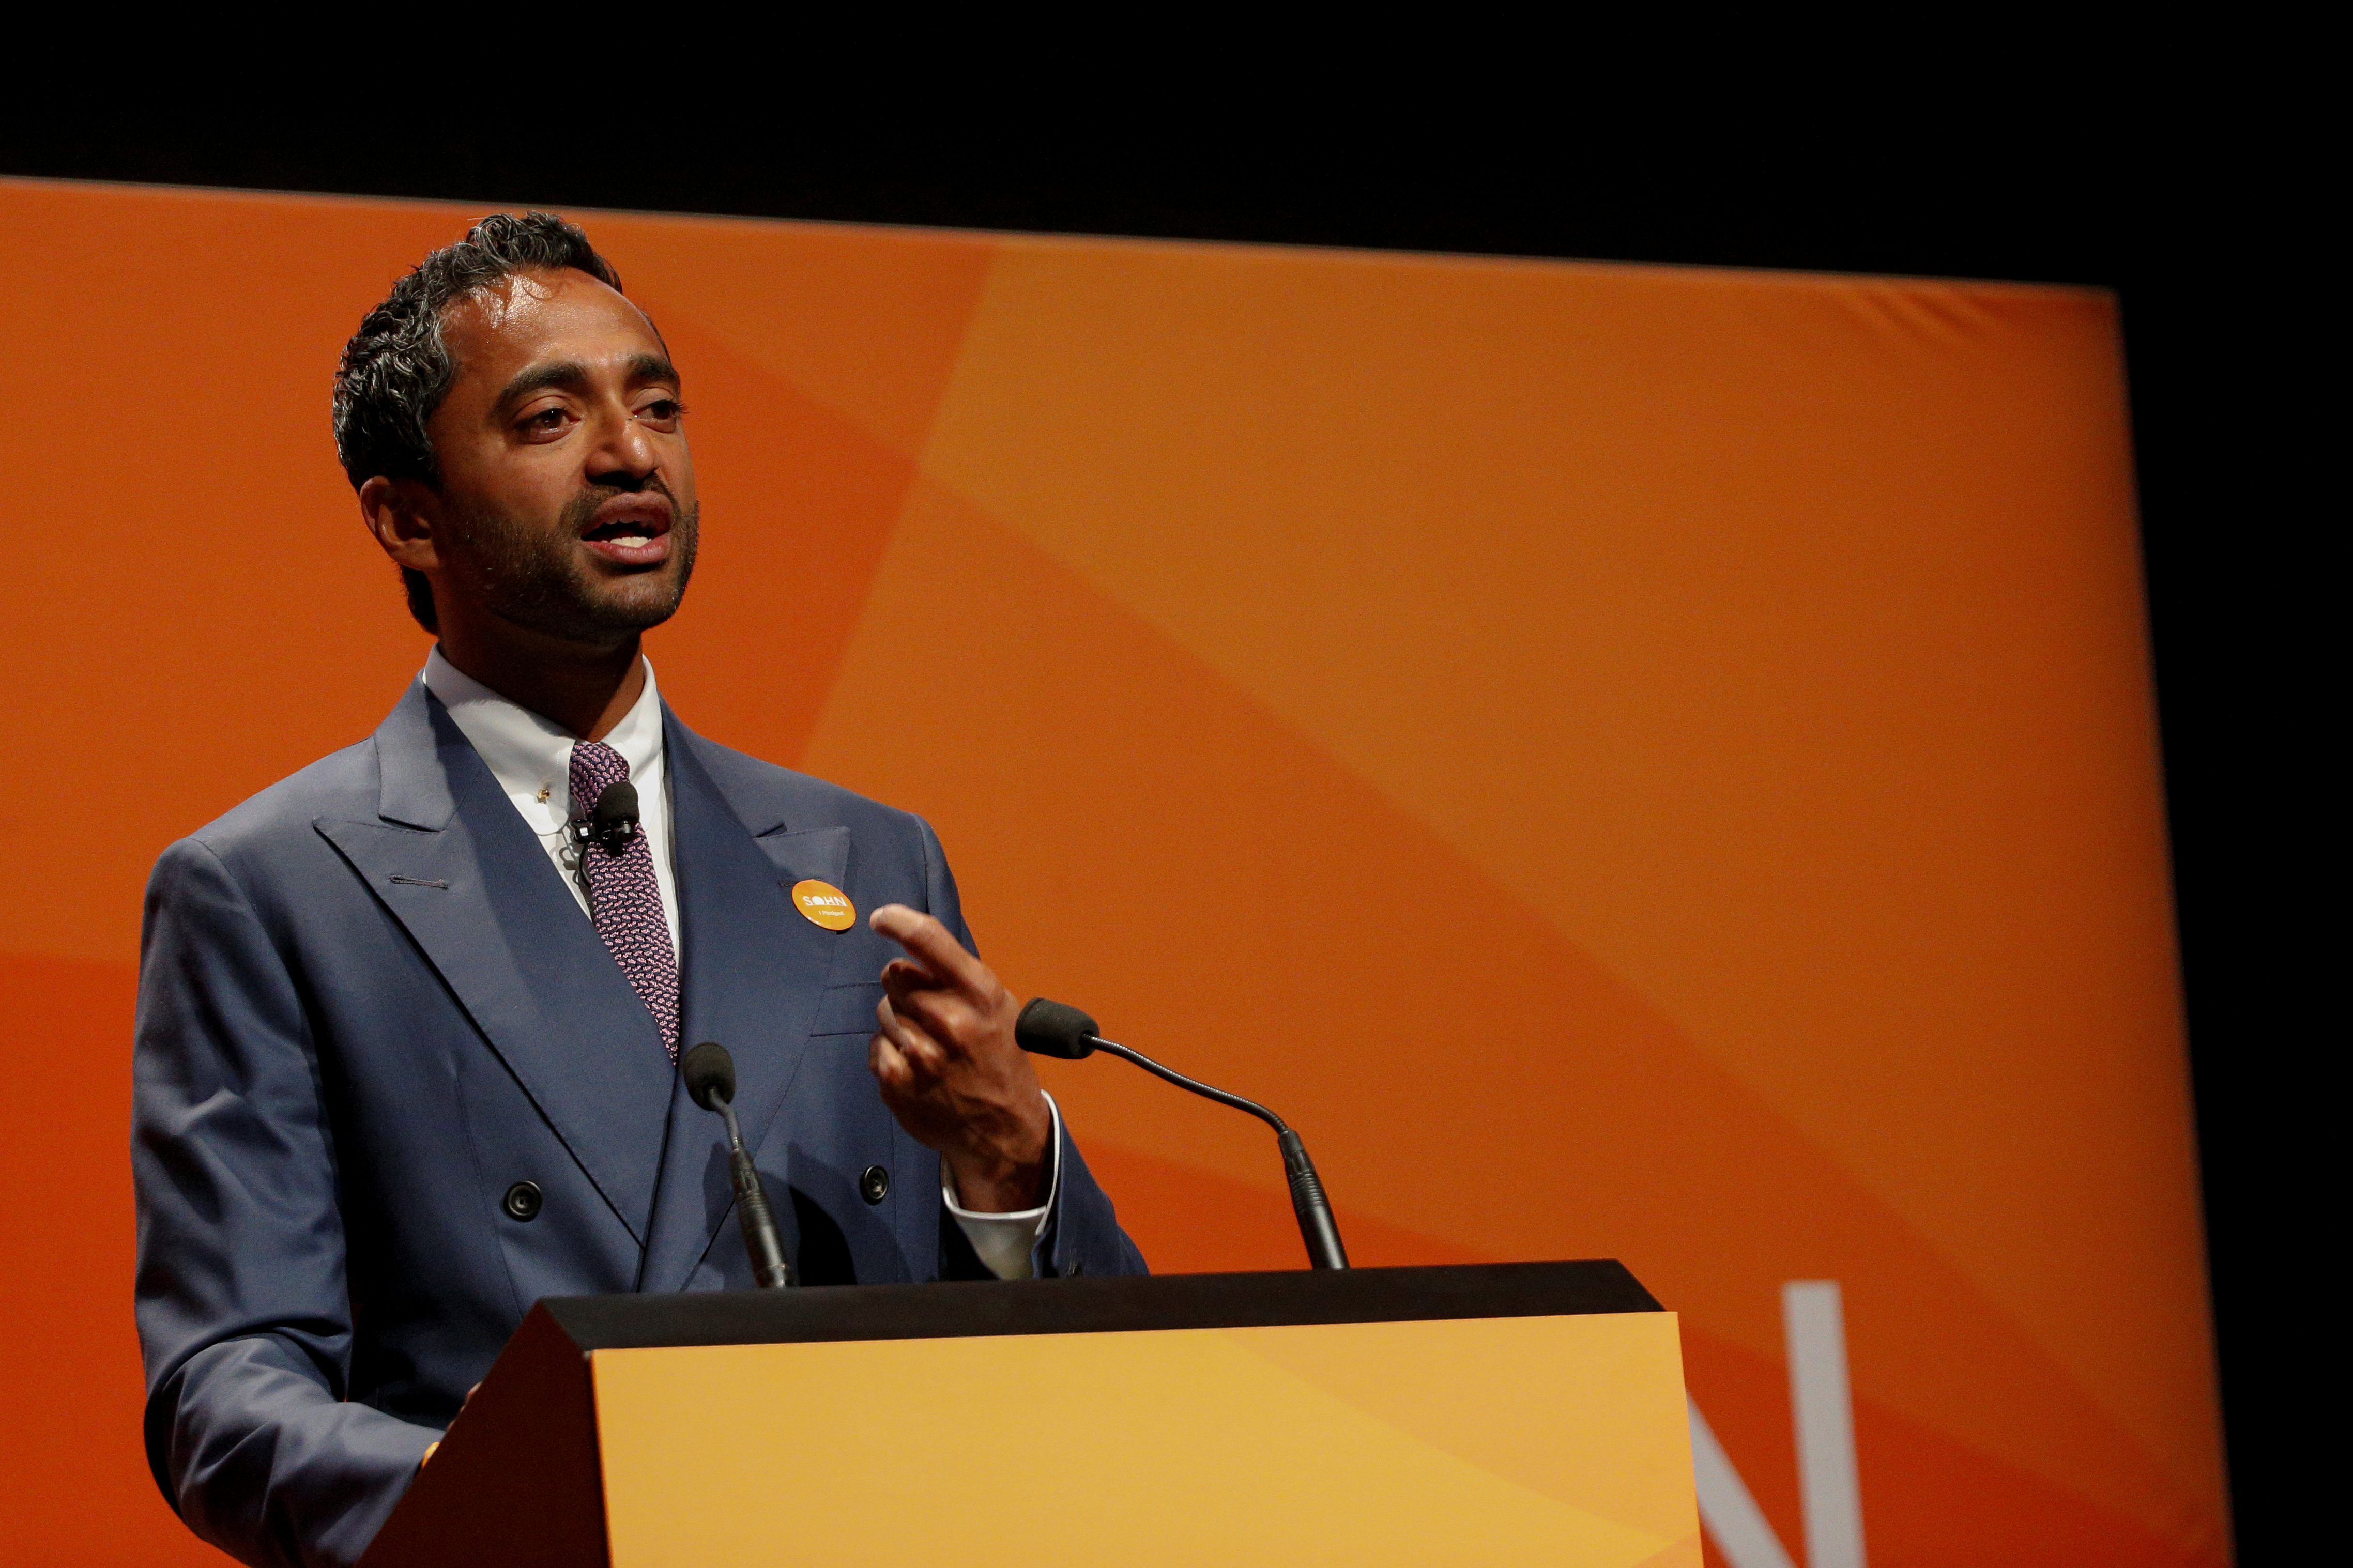 Chamath Palihapitiya, Founder and CEO of Social Capital, presents during the 2018 Sohn Investment Conference in New York City, U.S., April 23, 2018. REUTERS/Brendan McDermid